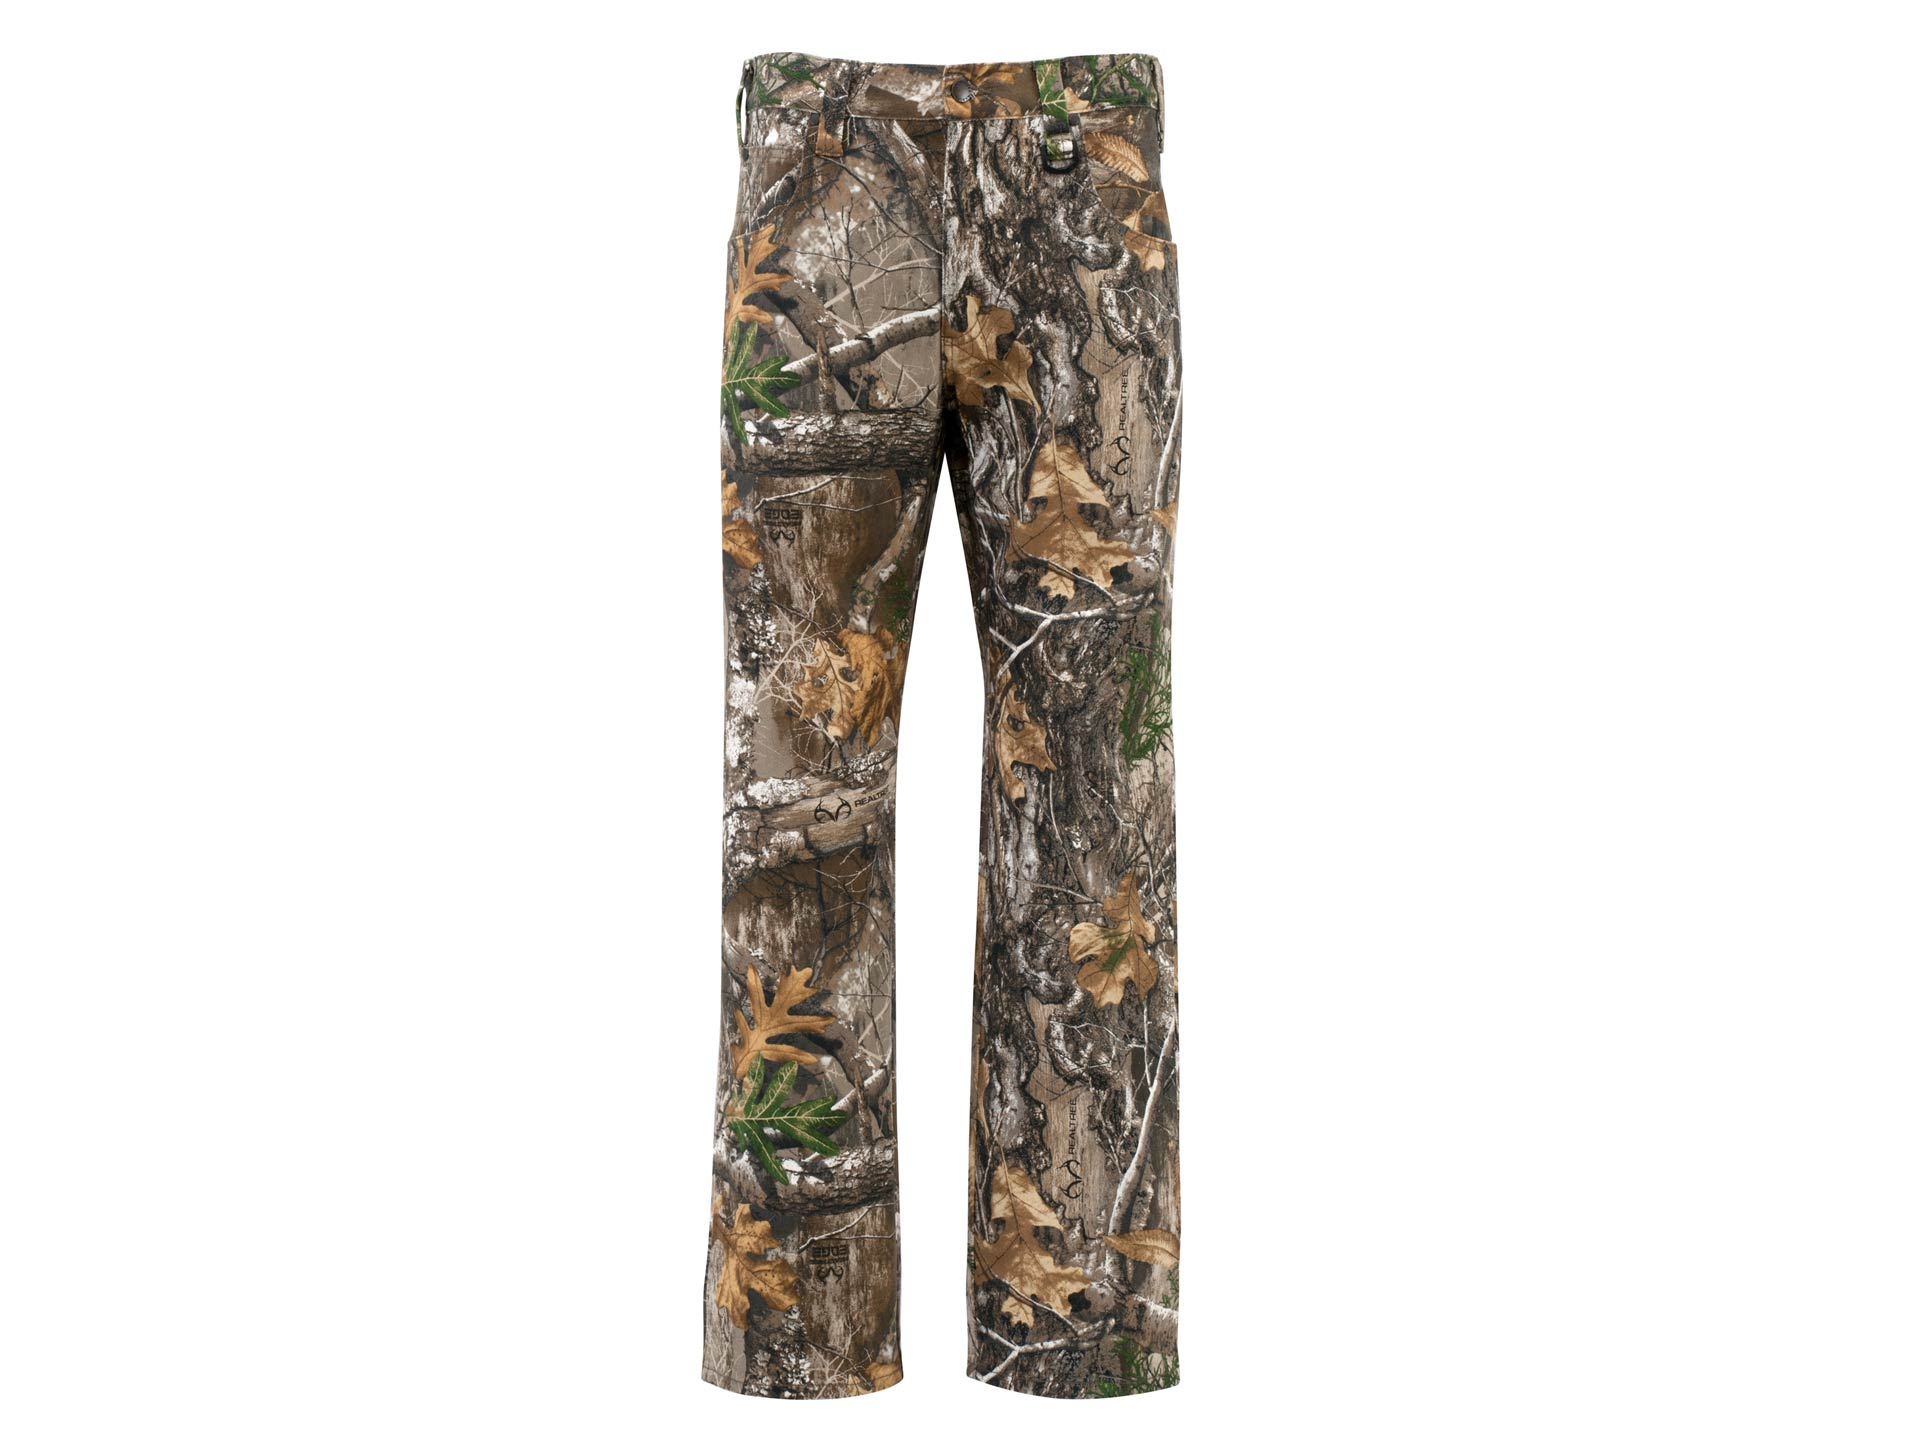 Realtree EDGE camouflage hunting pants